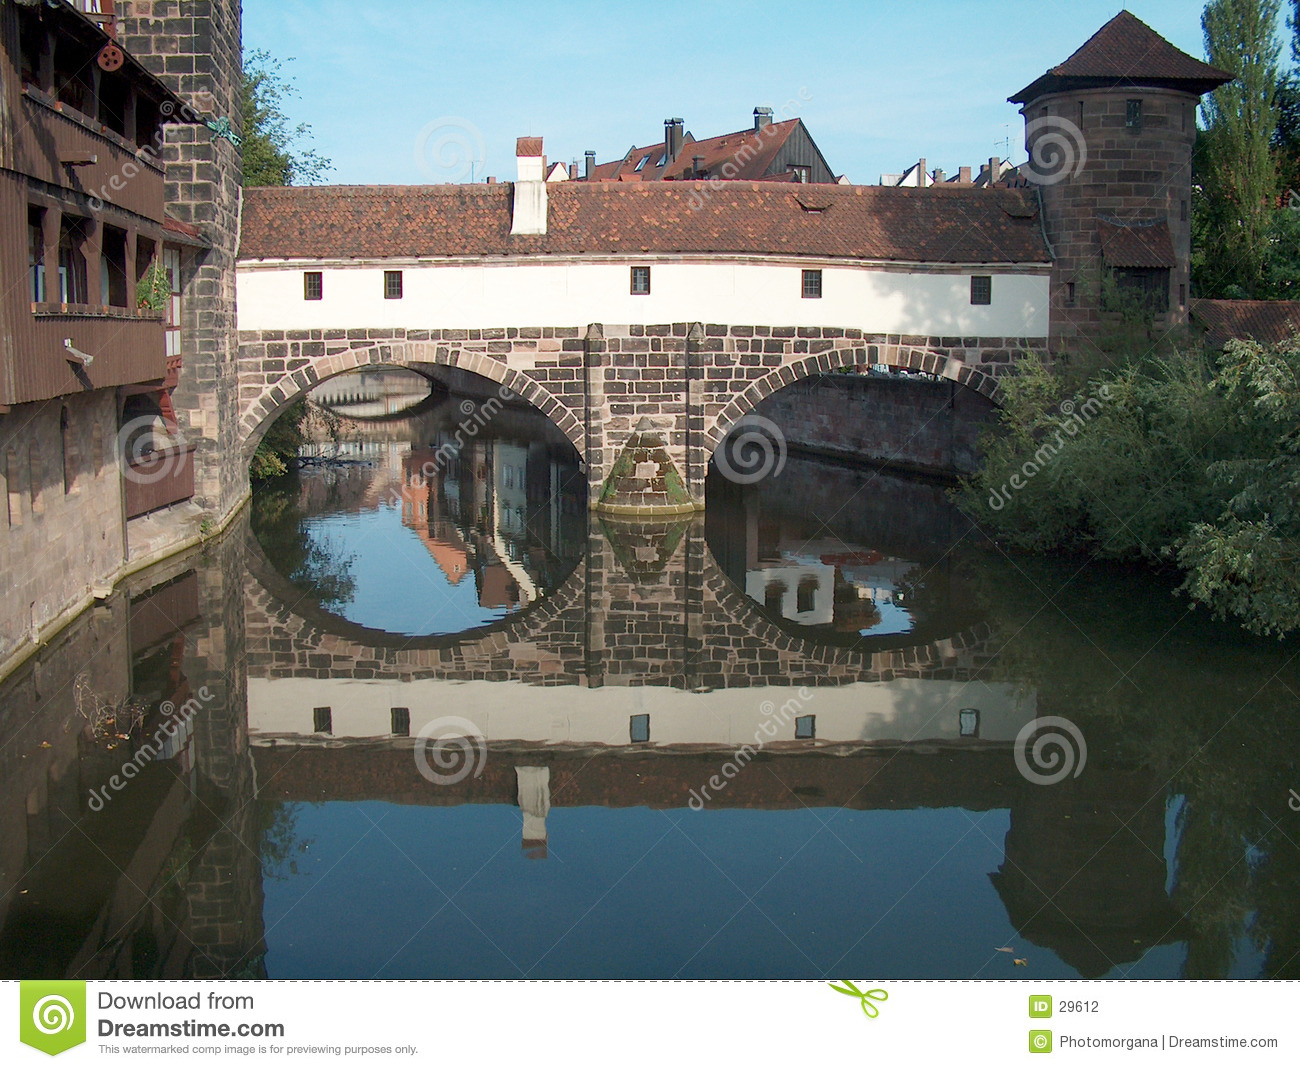 Nuernberg - Germany